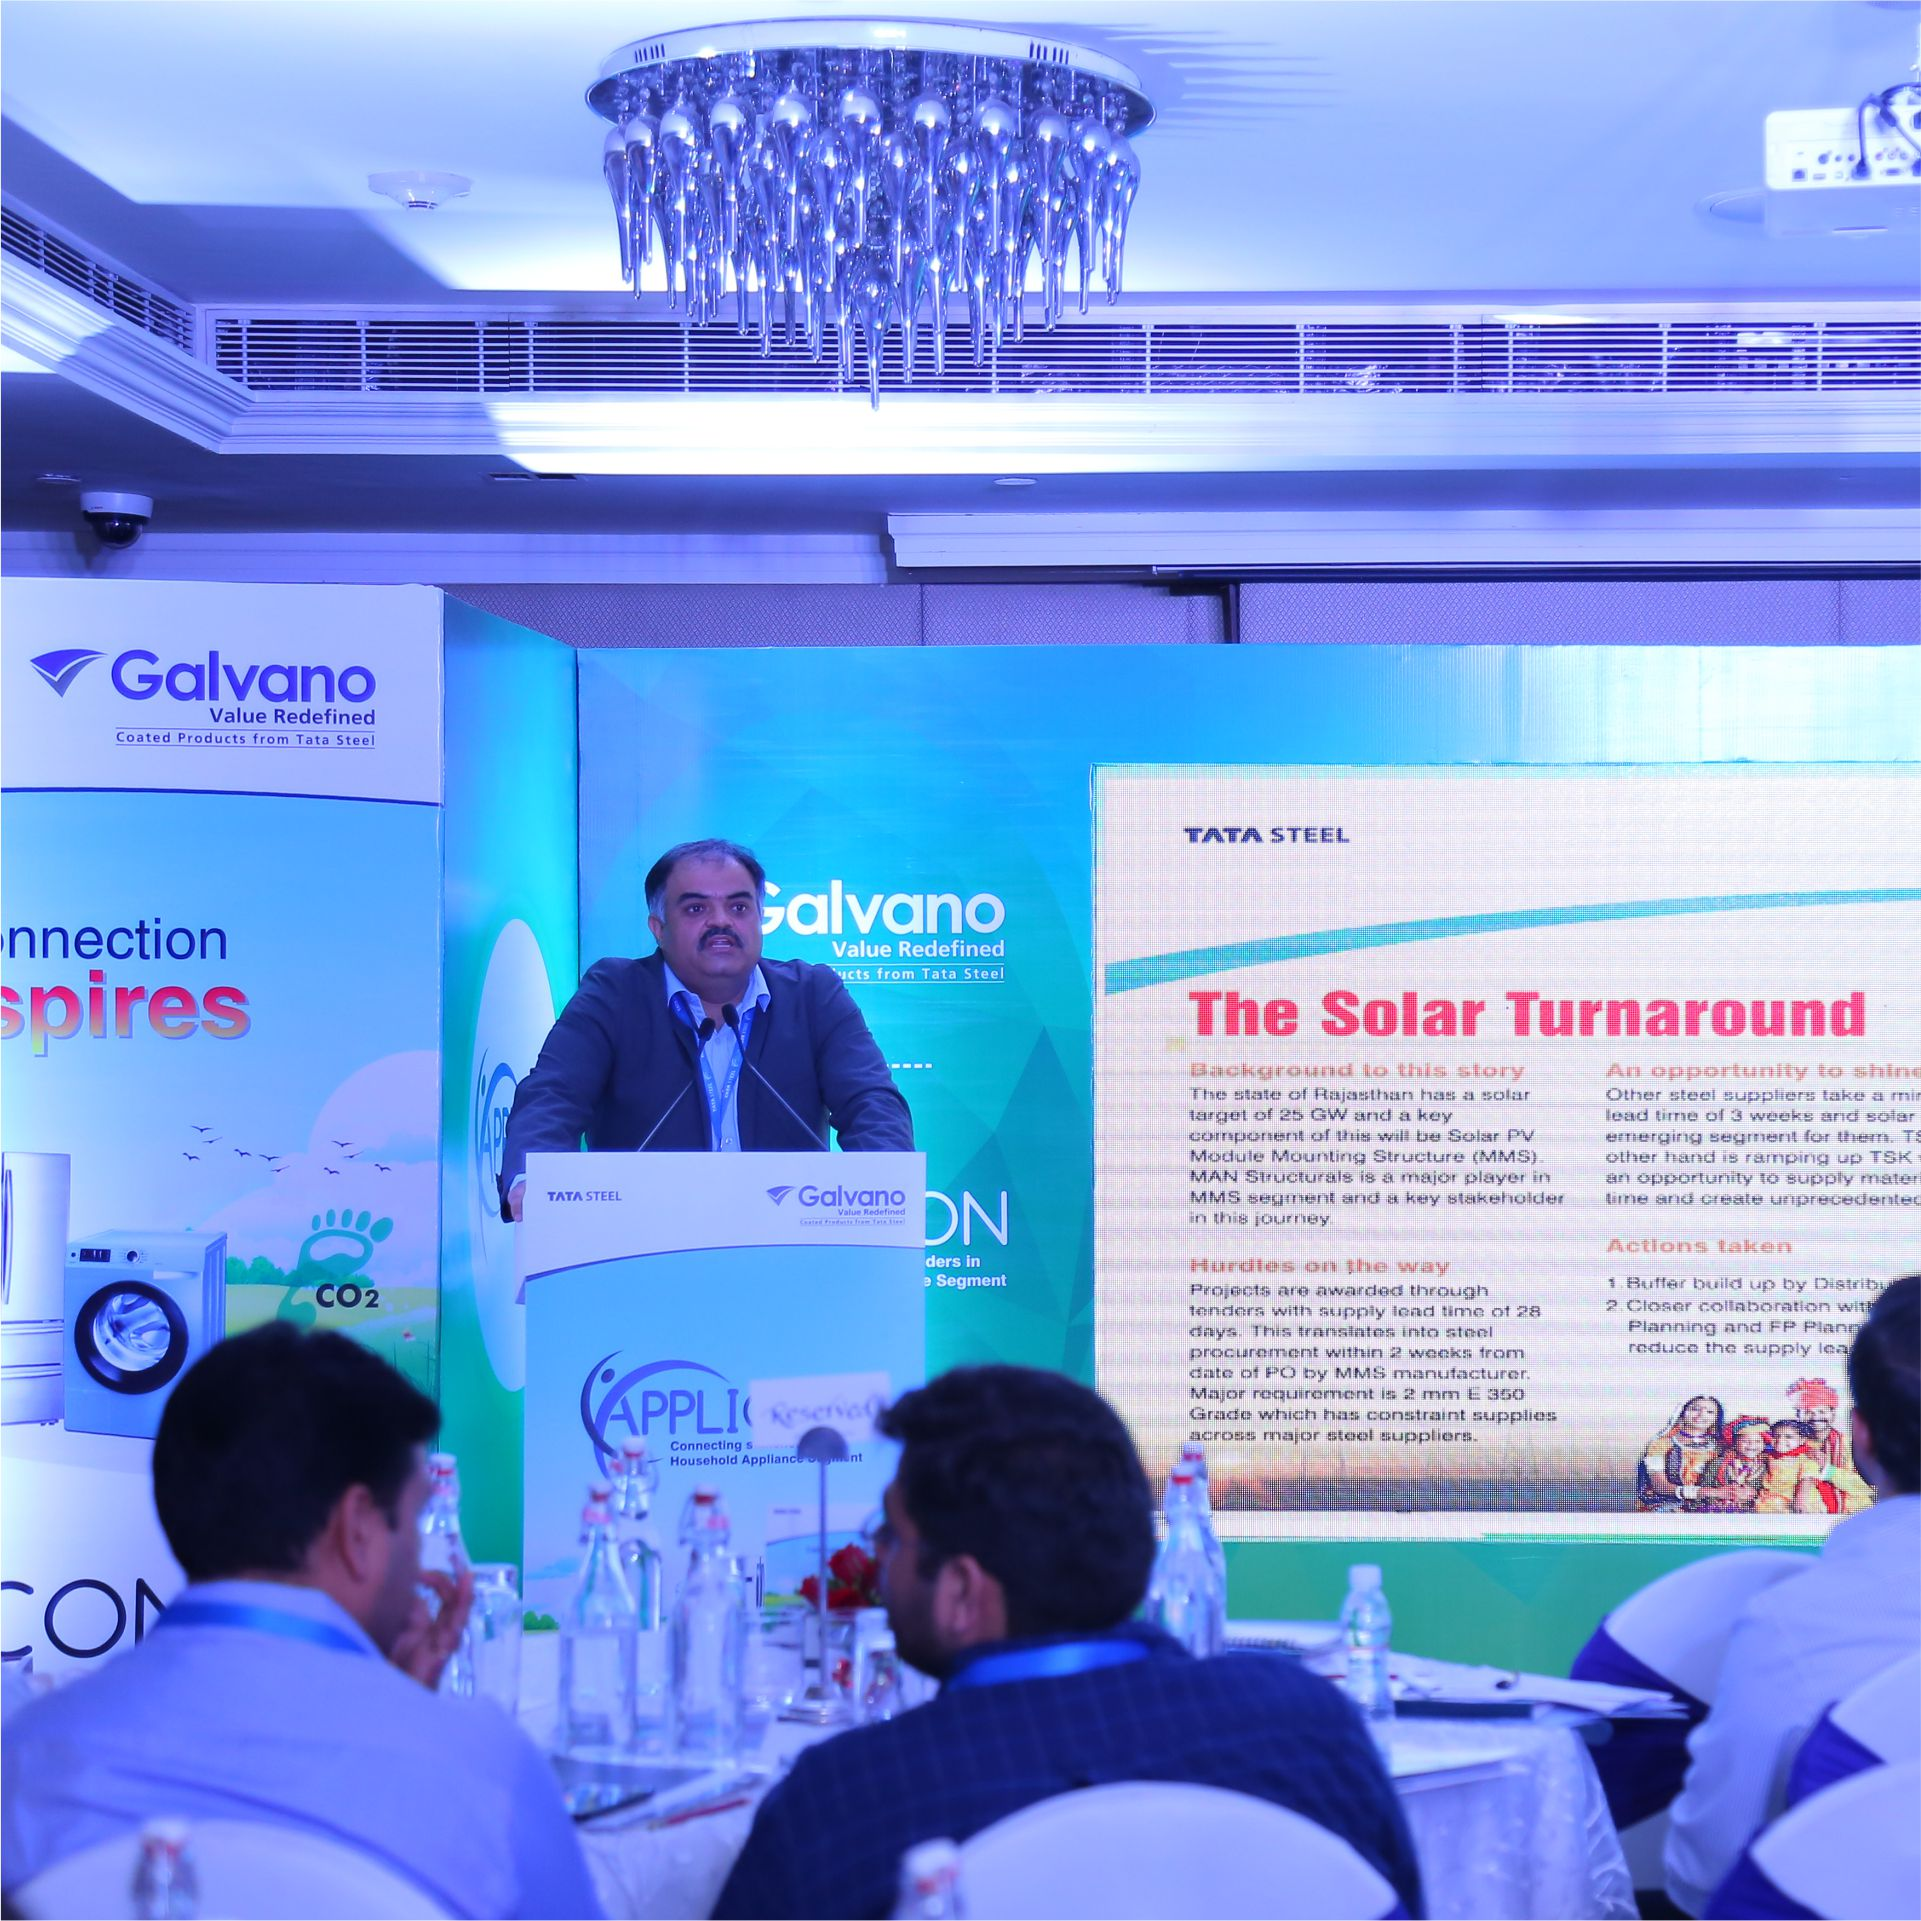 Mr Sanjay S Sahni, COMS, BP&R, Tata Steel addressing stakeholders at solar segment meet